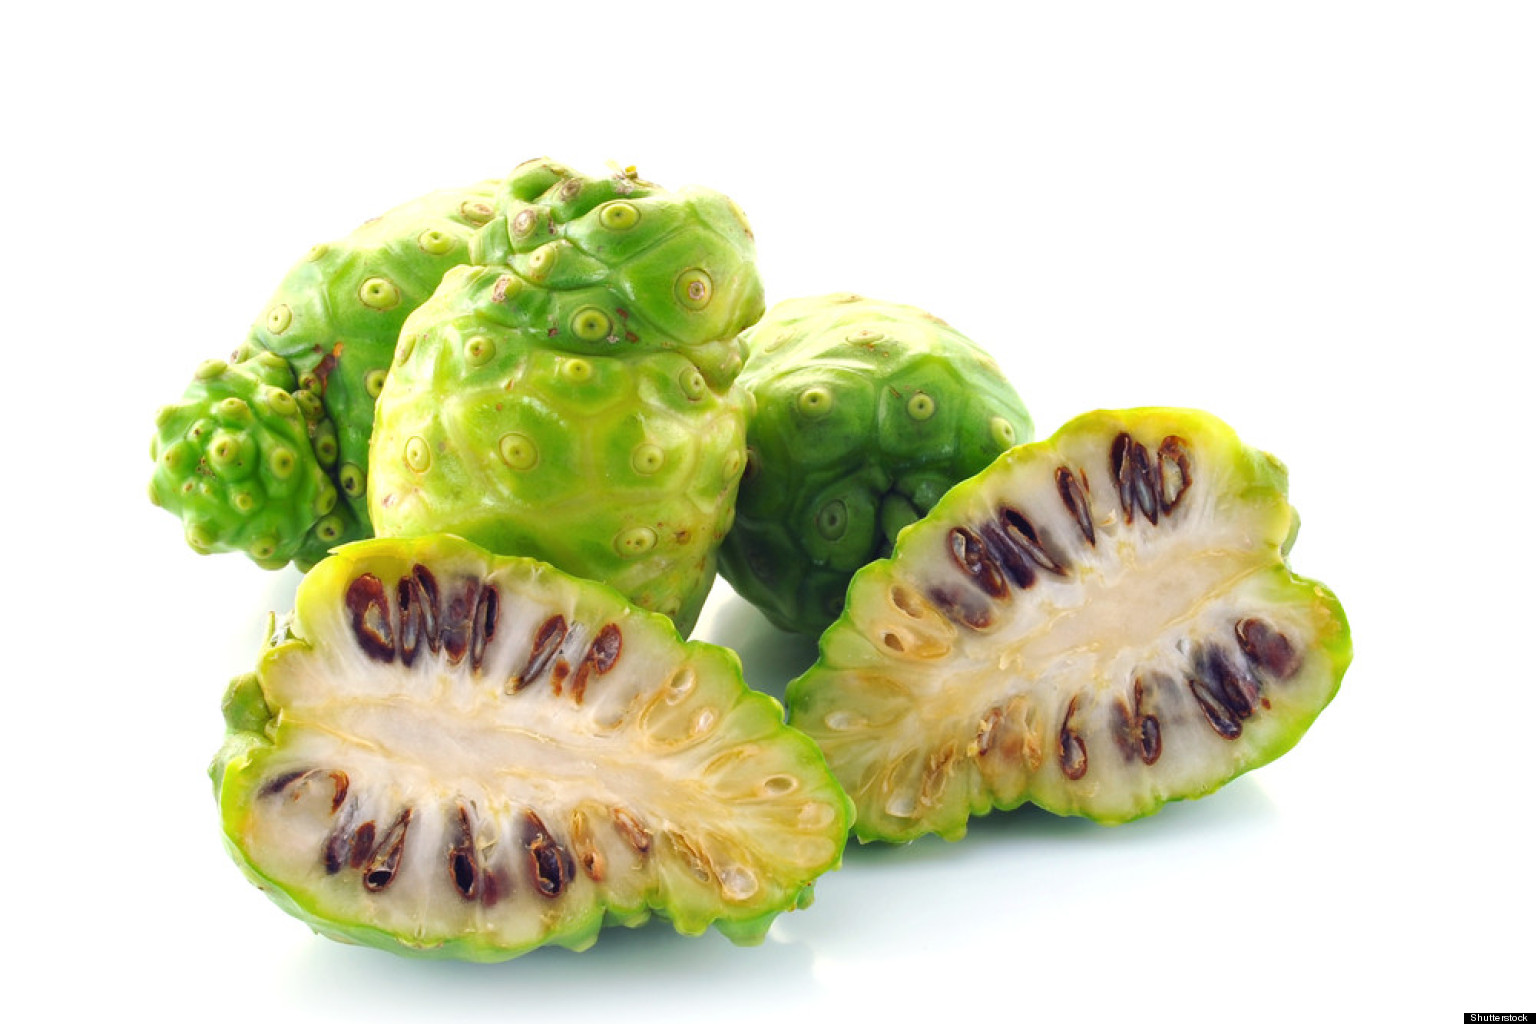 o-noni-fruit-facebook